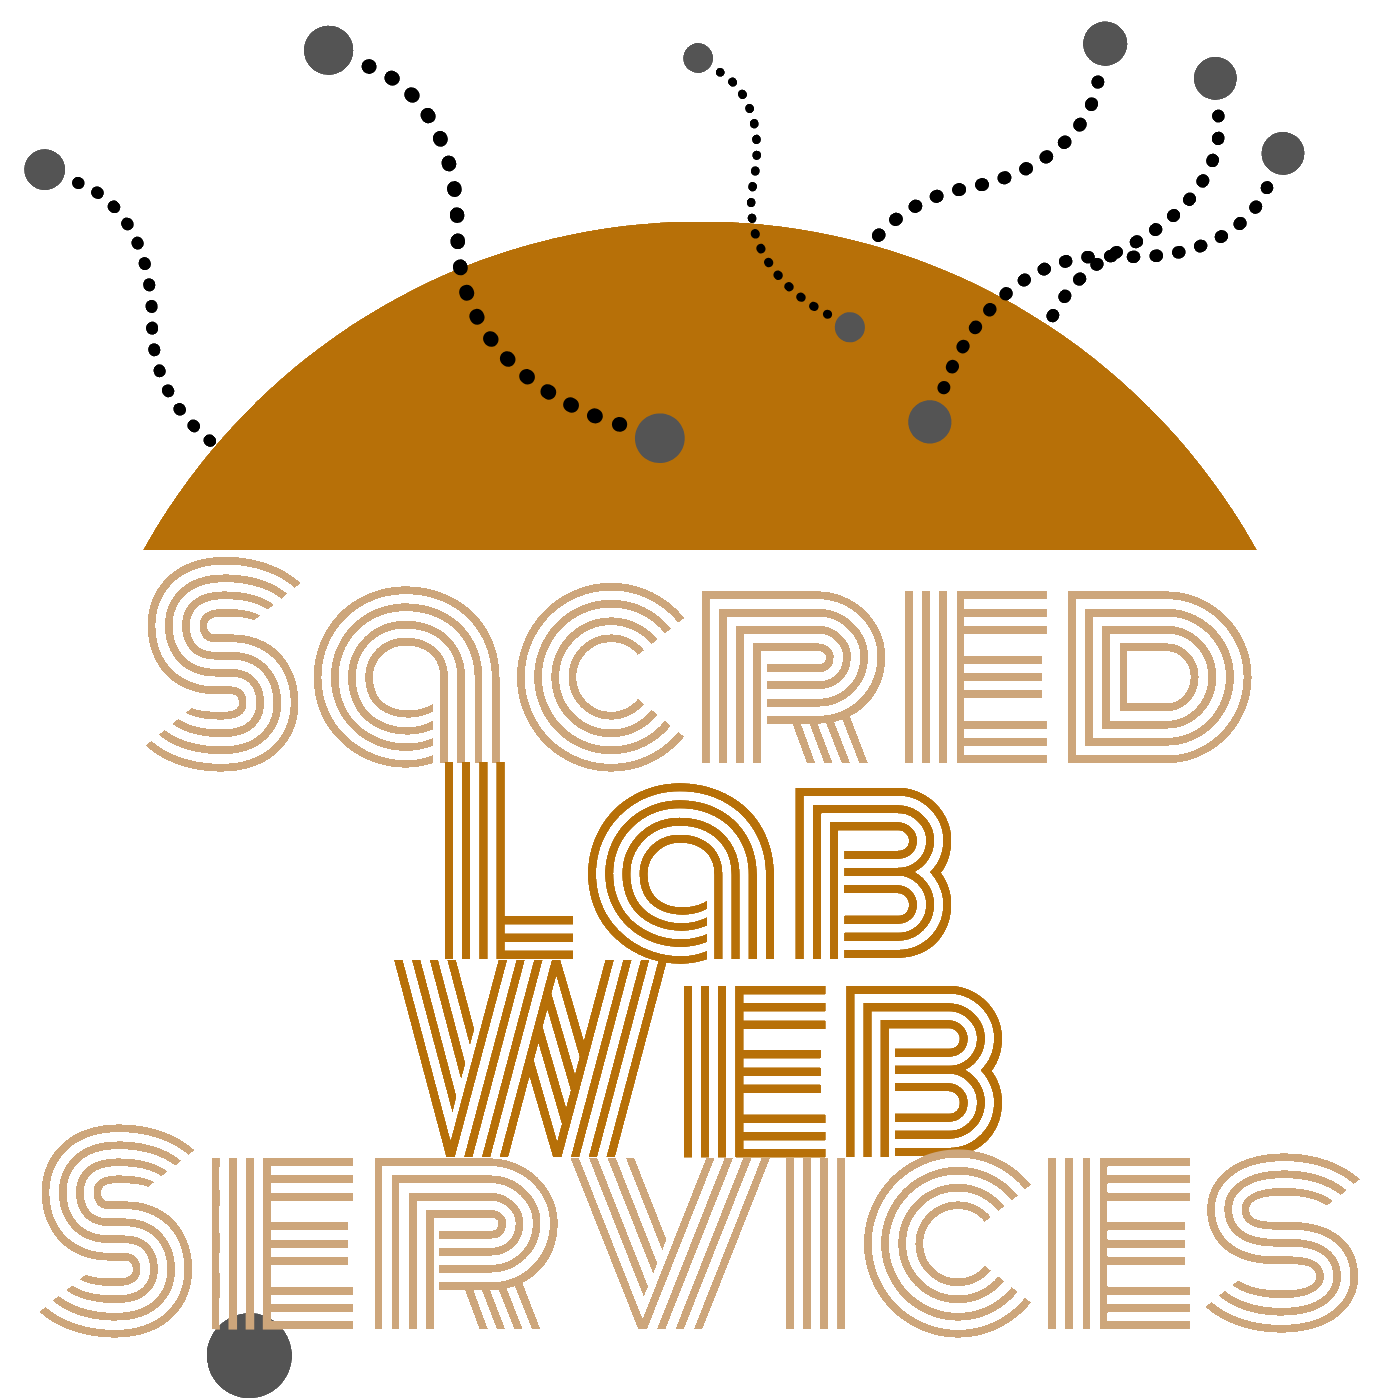 Sacred Lab Web Services